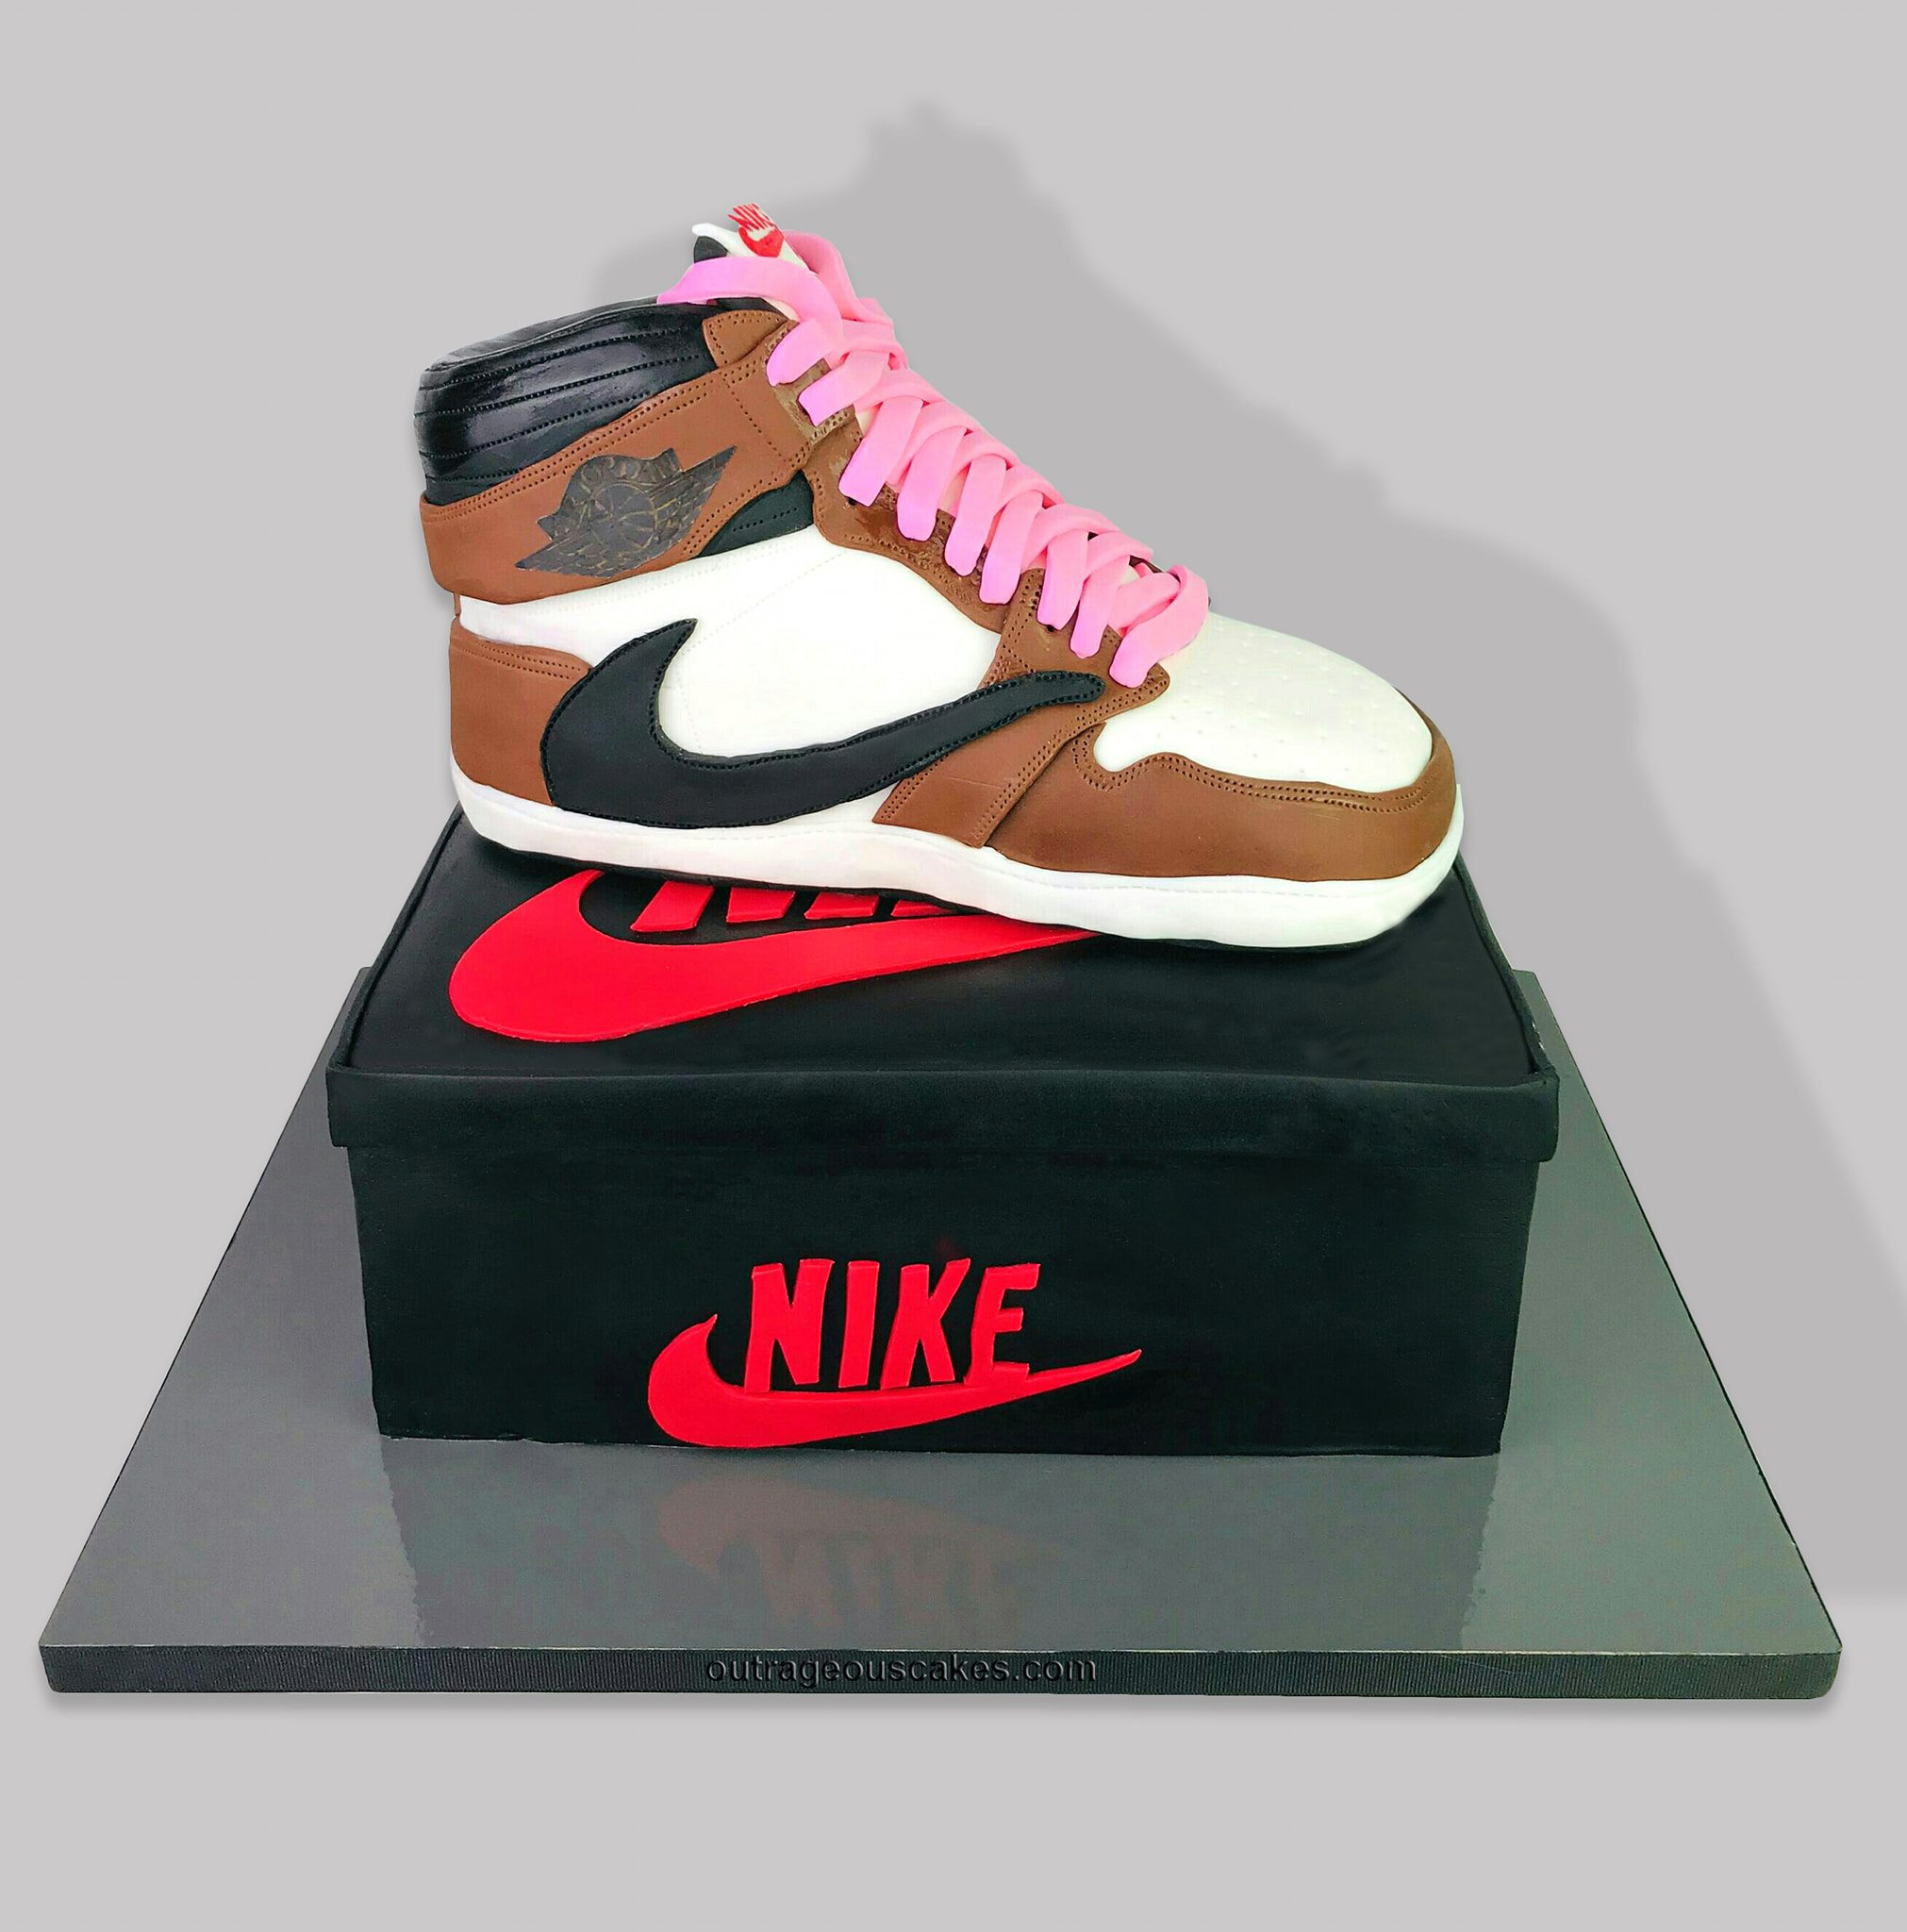 Travis Scott Nike Shoe Cake